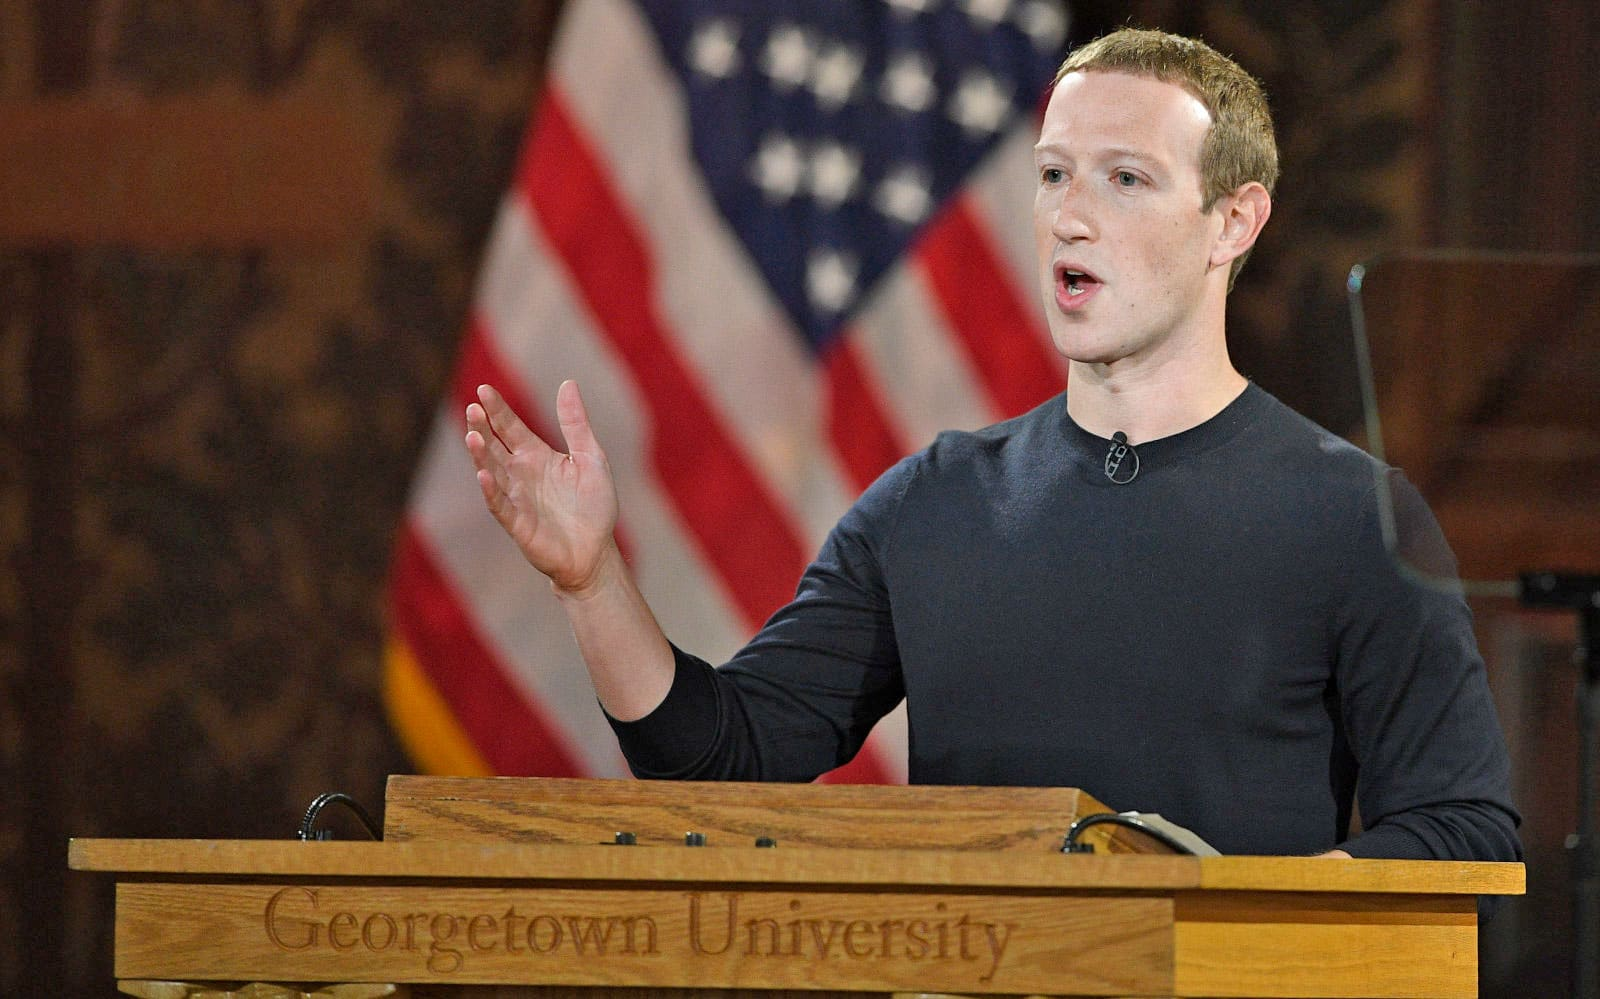 Mark Zuckerberg defends free speech on Facebook